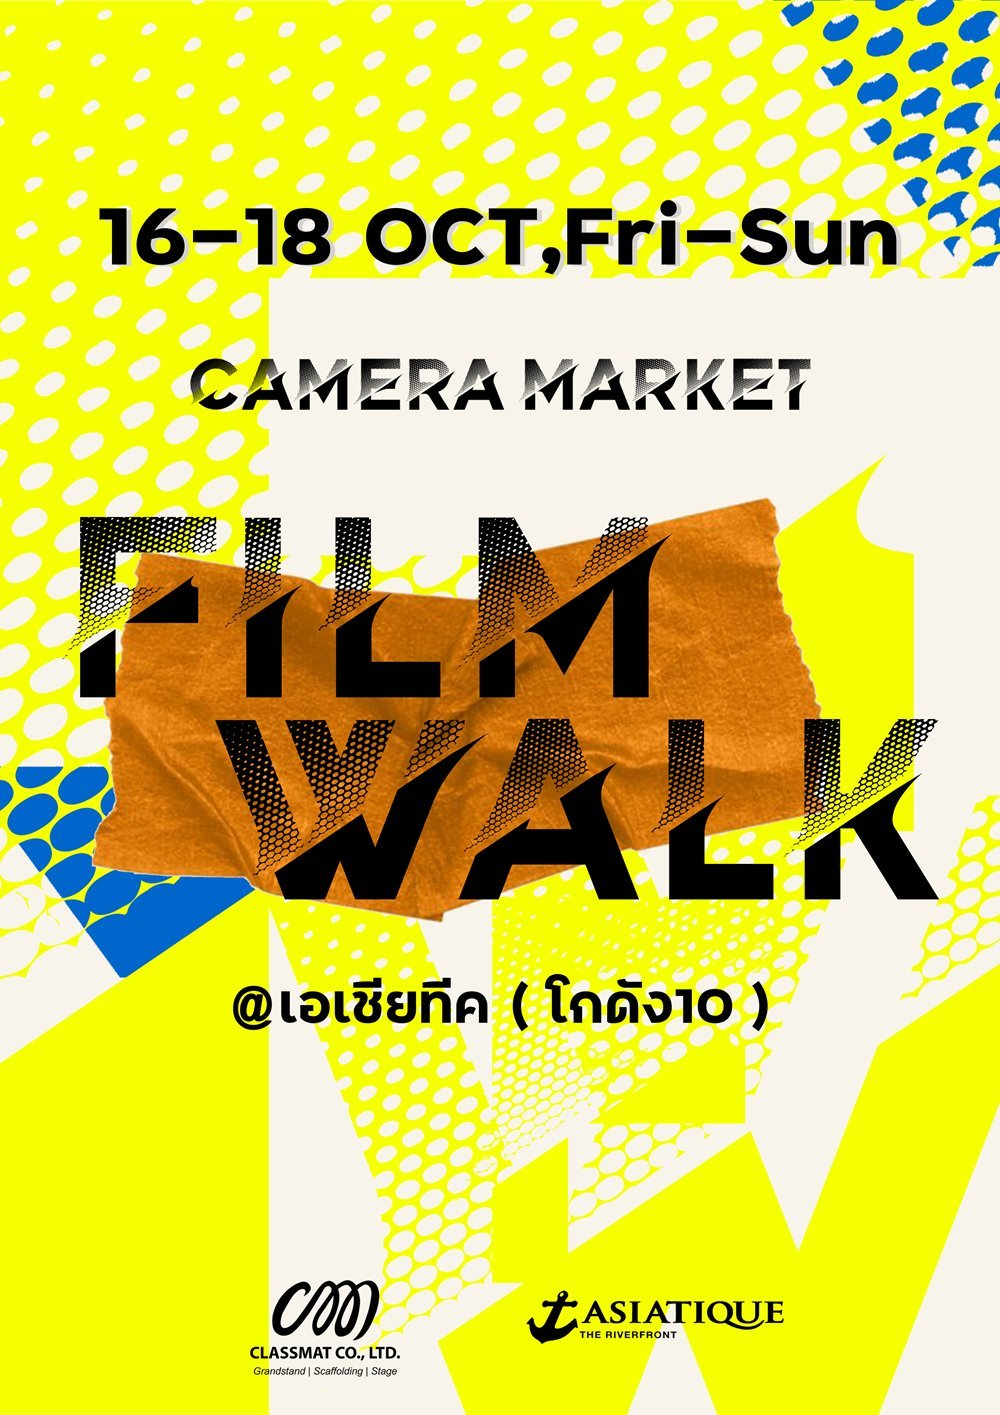 Film Walk Market